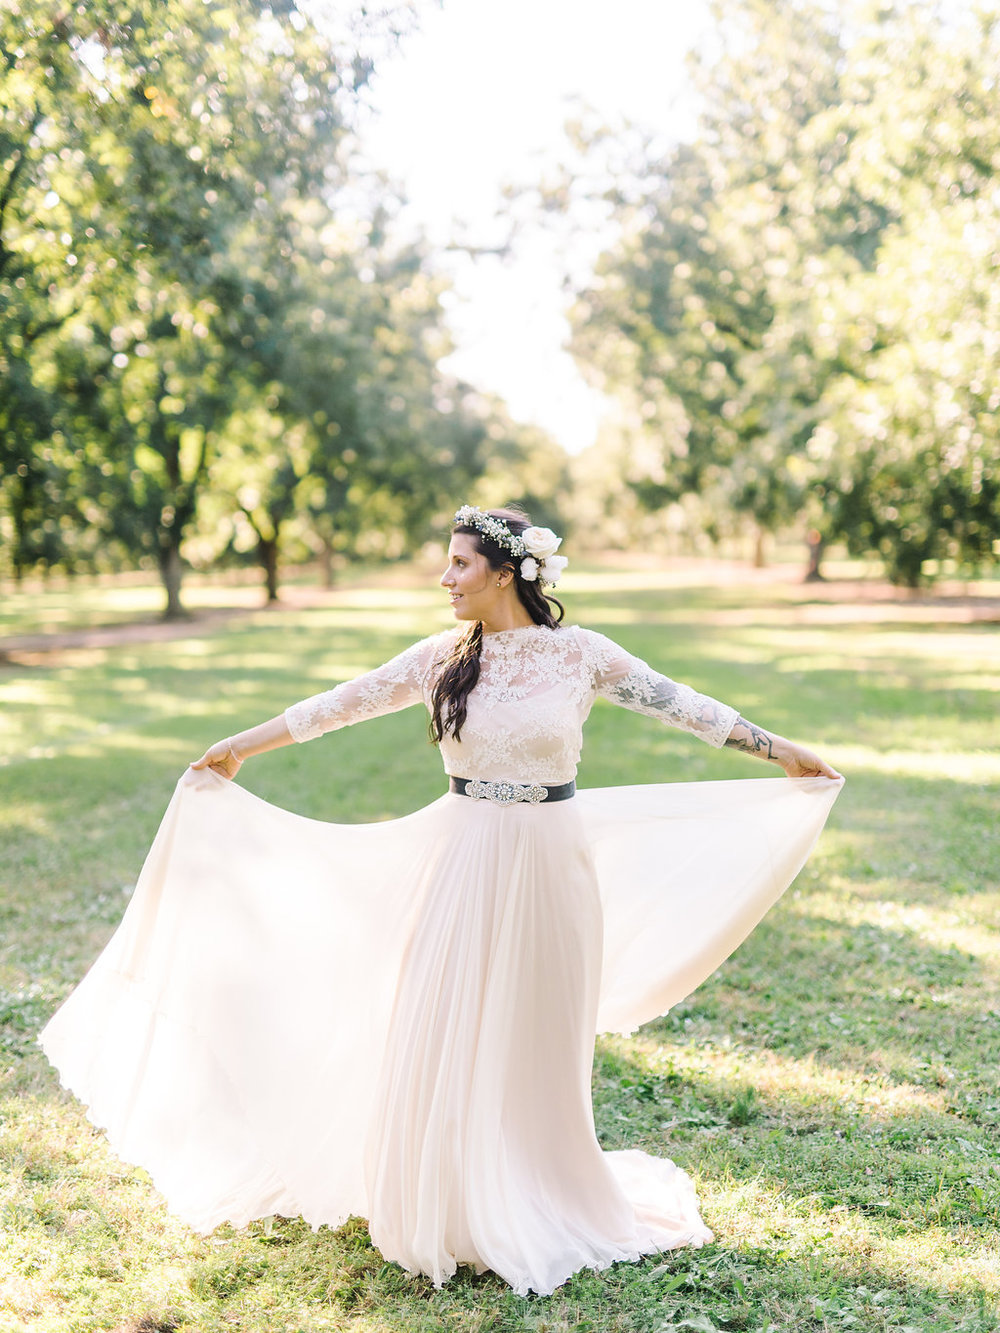 rach-loves-troy-photography-atlanta-wedding-pineola-farms-wedding-cat-wedding-rebecca-shoneveld-vivian-sage-ivory-and-beau-bridal-boutique-savannah-wedding-dresses-savannah-bridal-boutique-savannah-bridal-gowns-savannah-florist-georgia-bridal-9.jpg